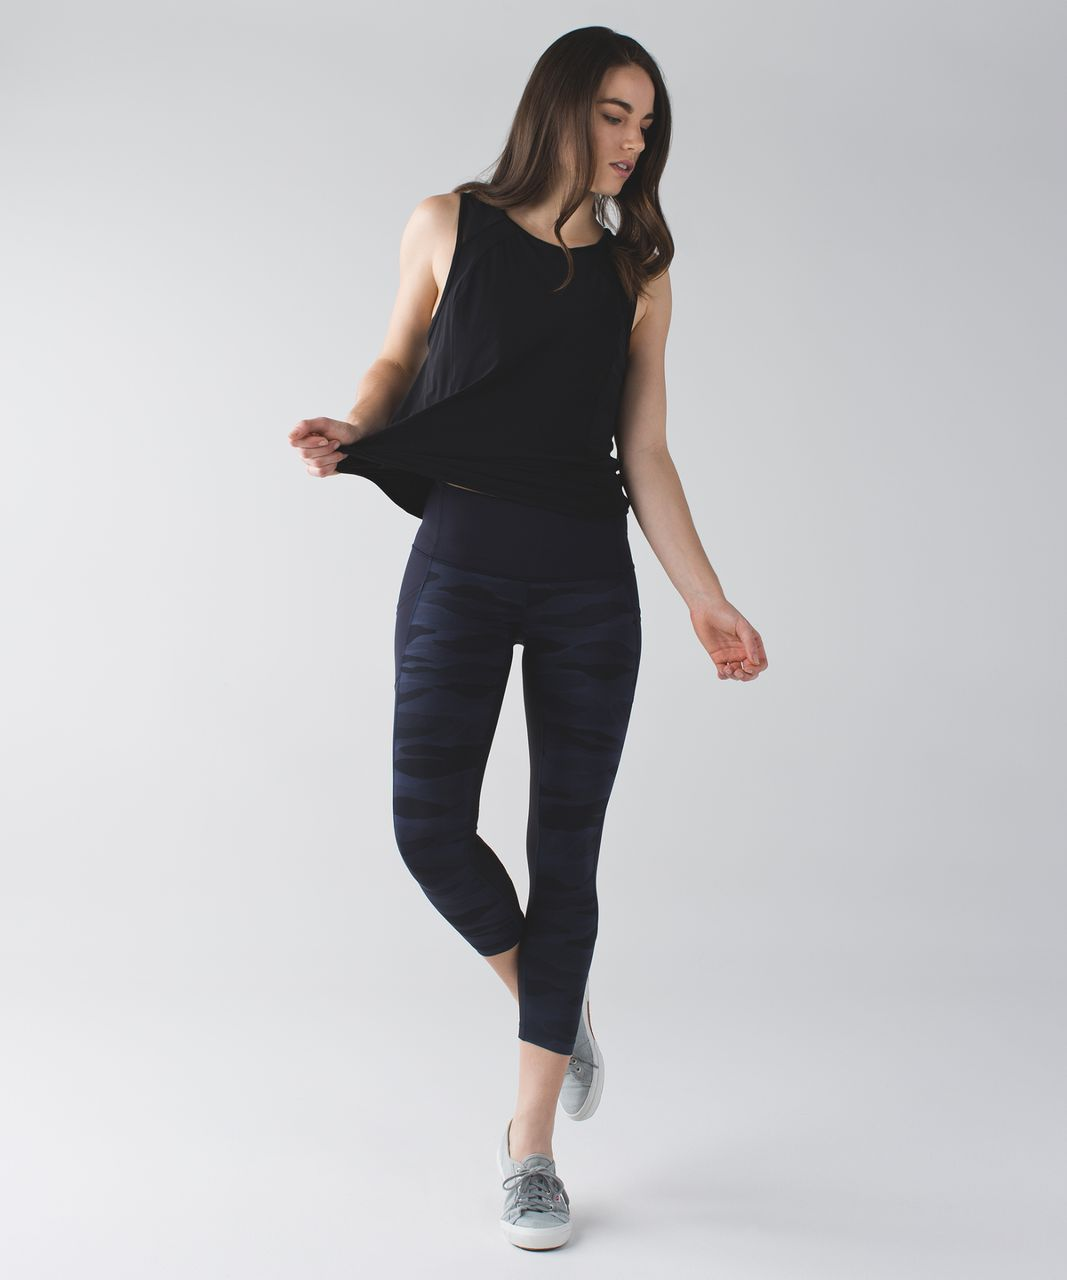 Lululemon Seek The Heat Crop - Mini Coast Camo Deep Navy Black / Naval Blue